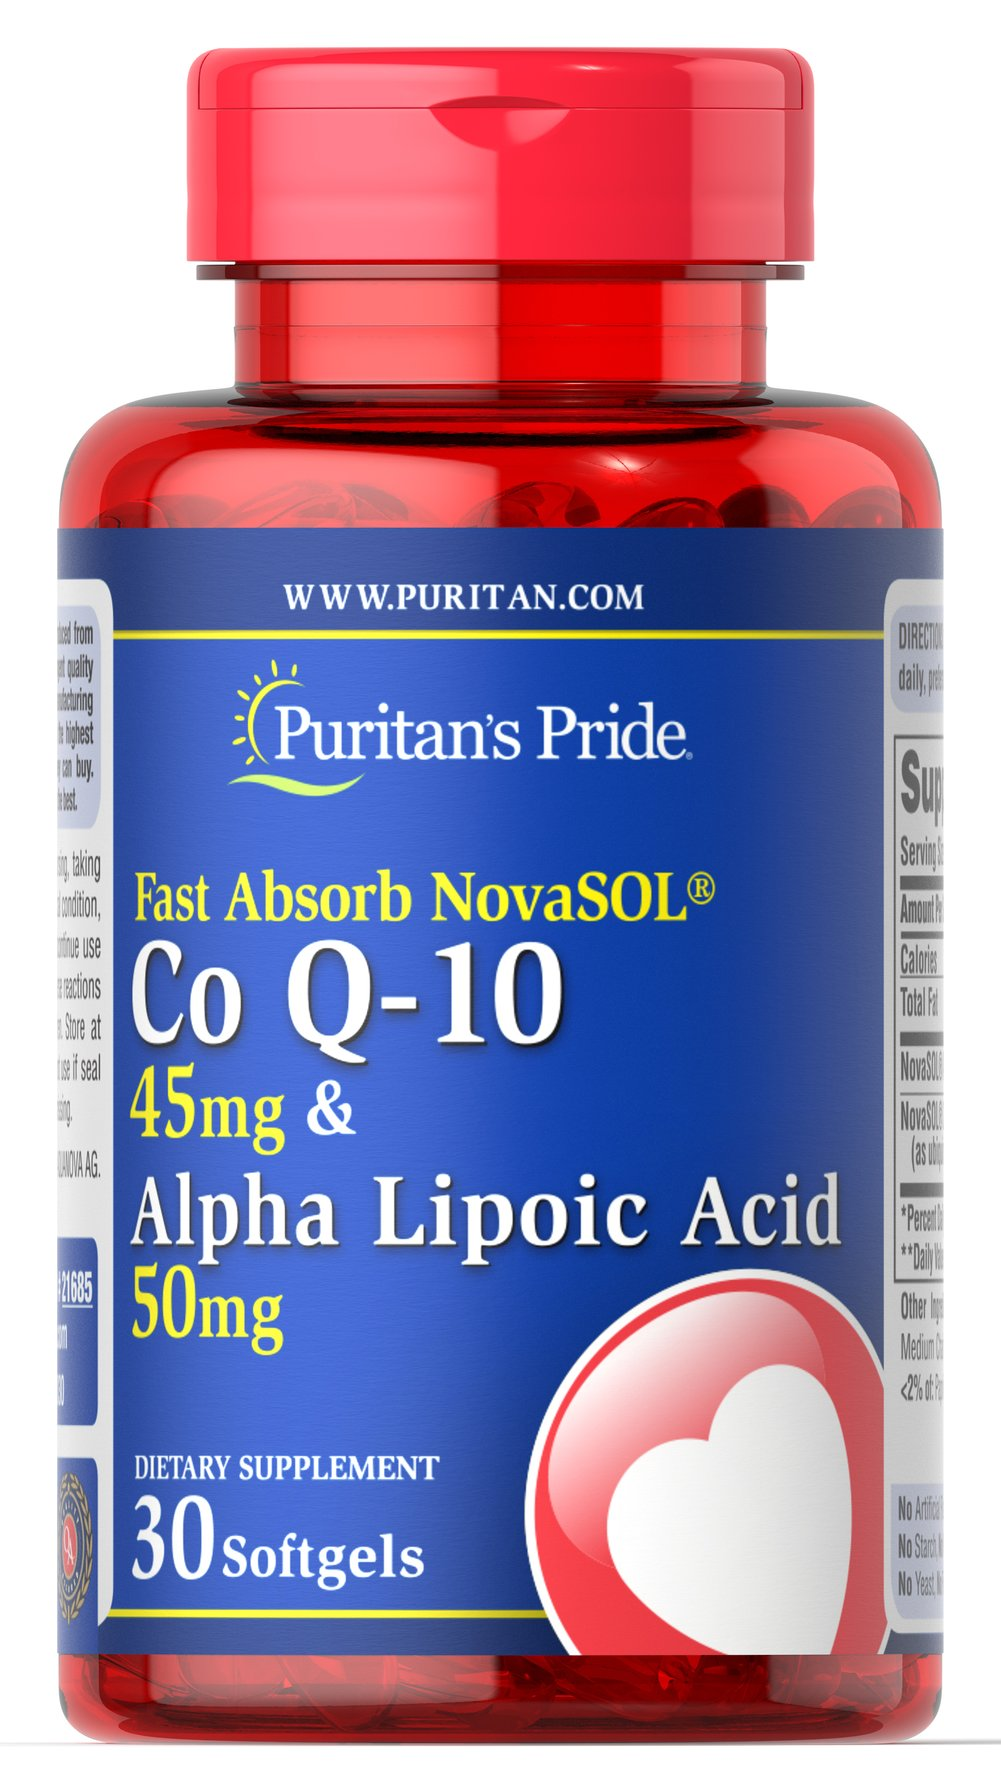 Fast Absorb NovaSOL® Co Q-10 45 mg & Alpha Lipoic Acid 50 mg